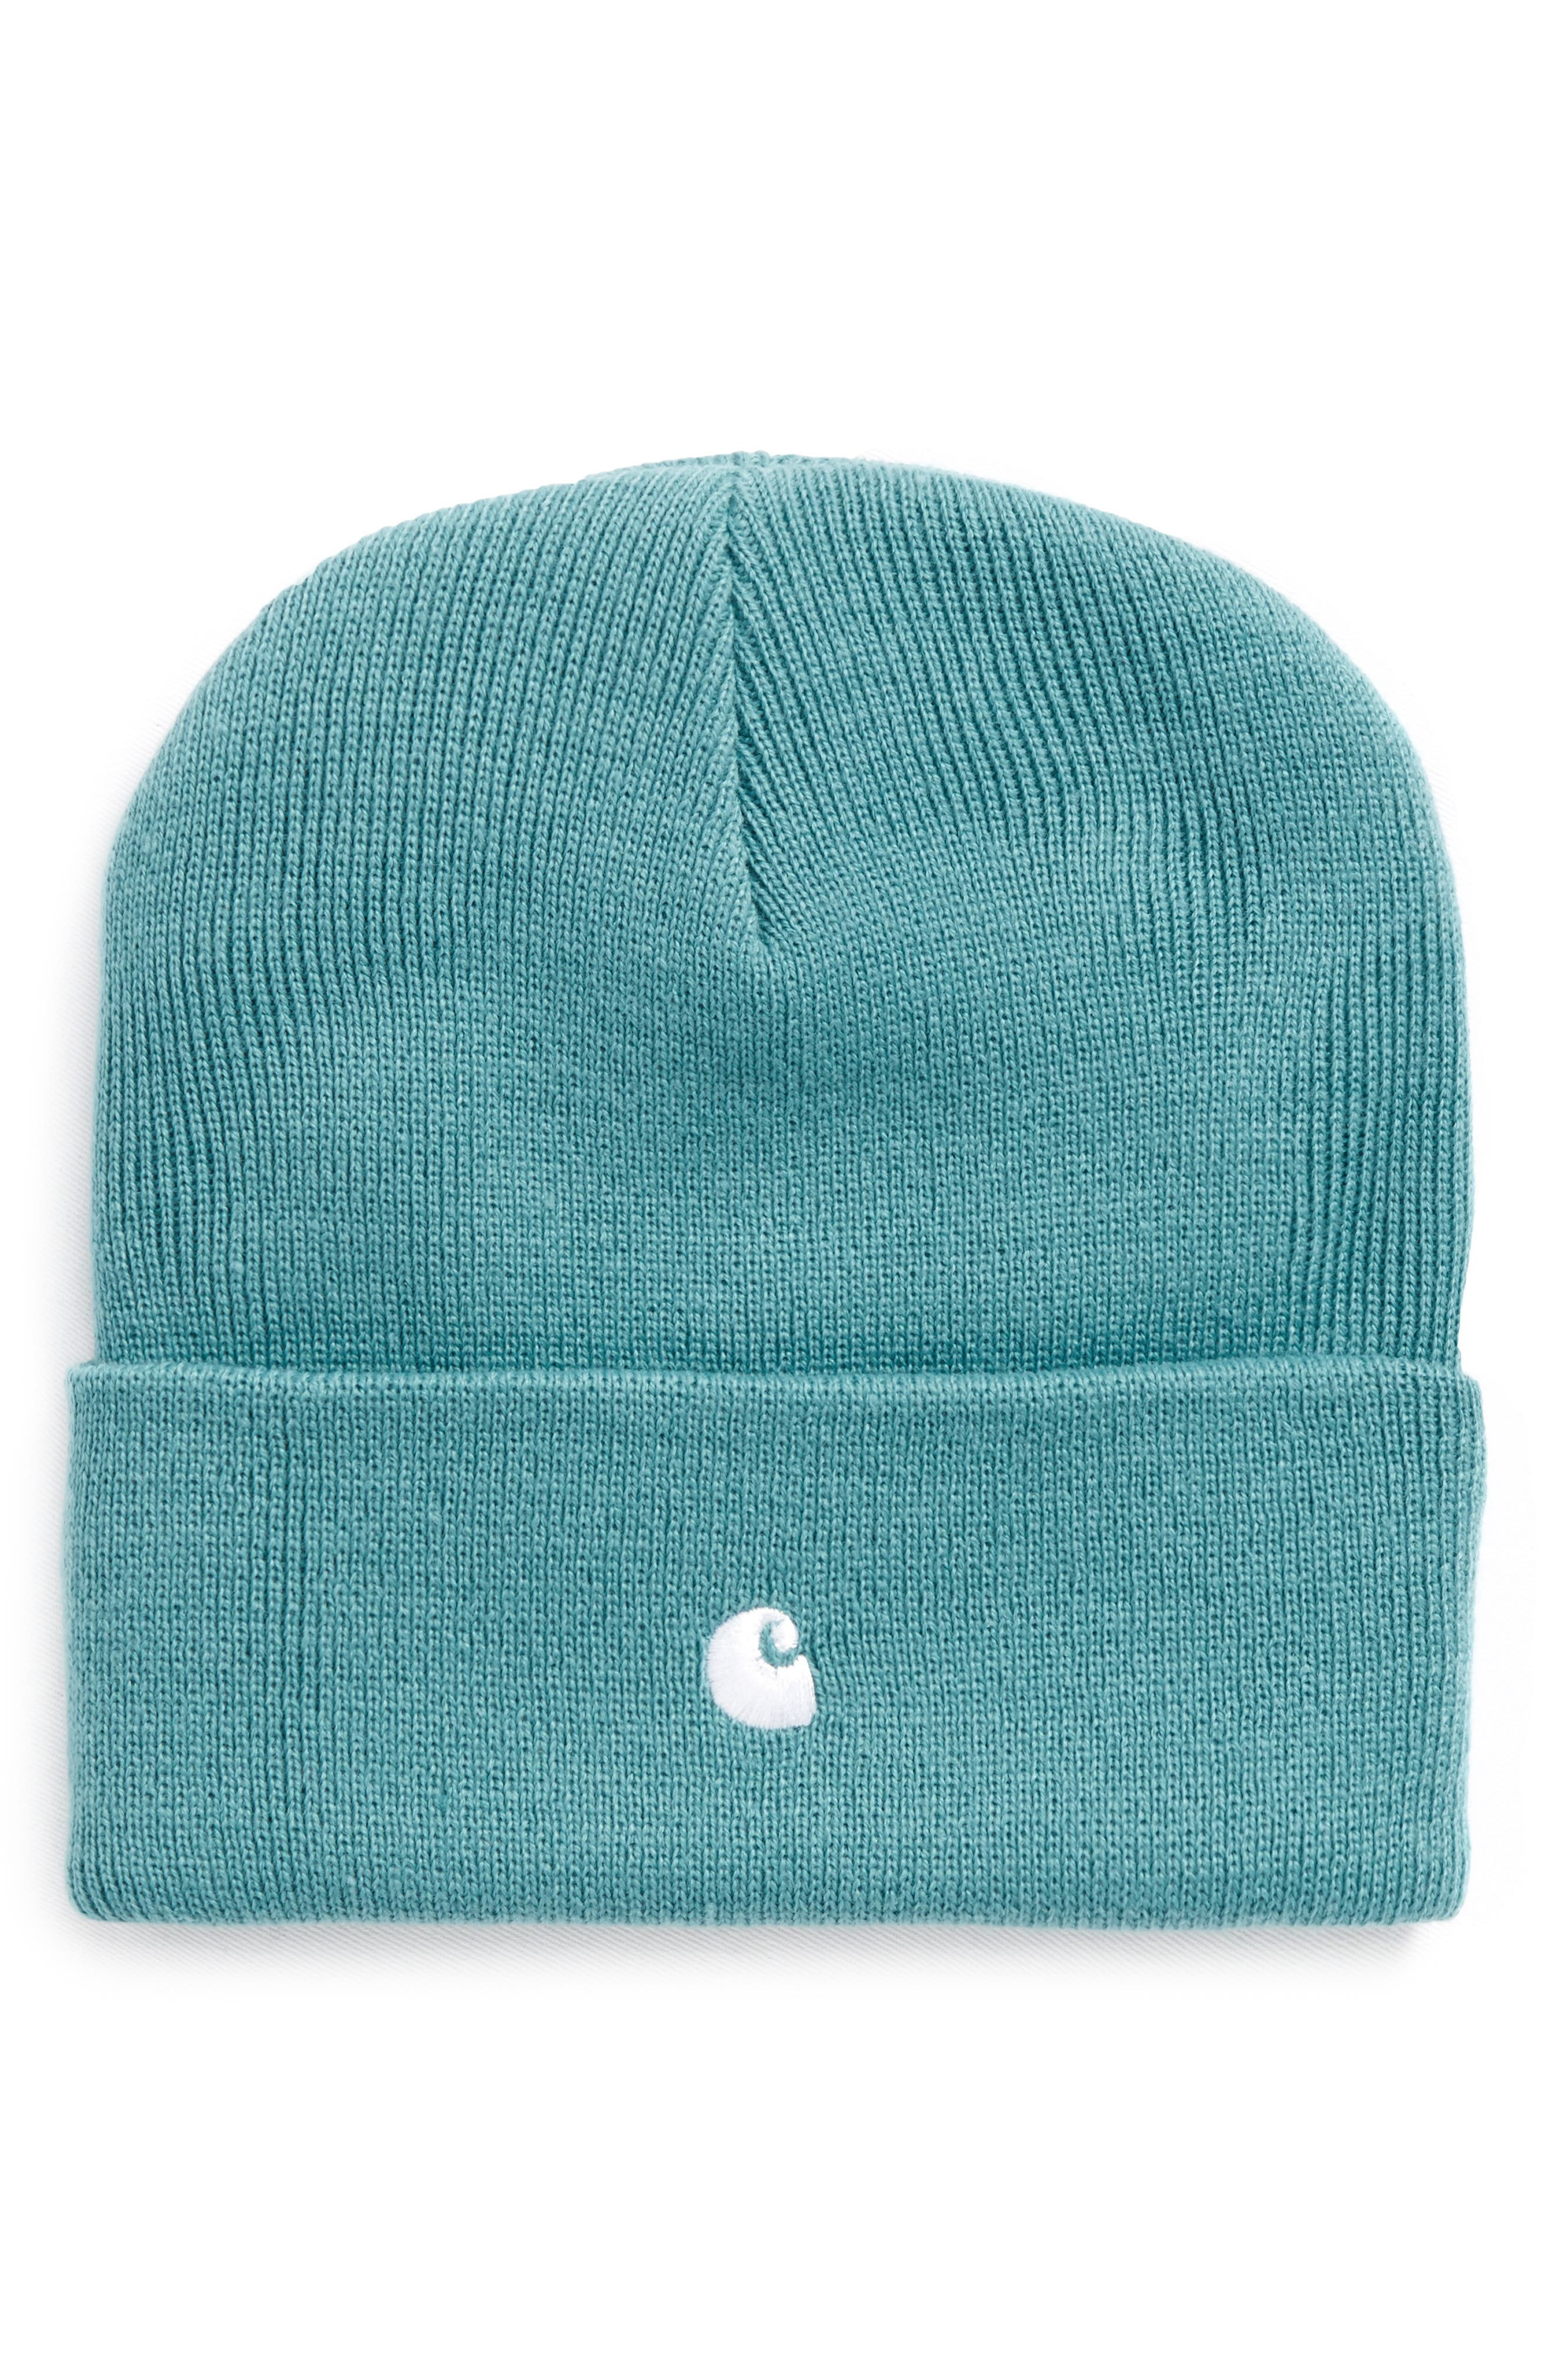 Madison Beanie,                             Main thumbnail 1, color,                             71590-Soft Teal/White